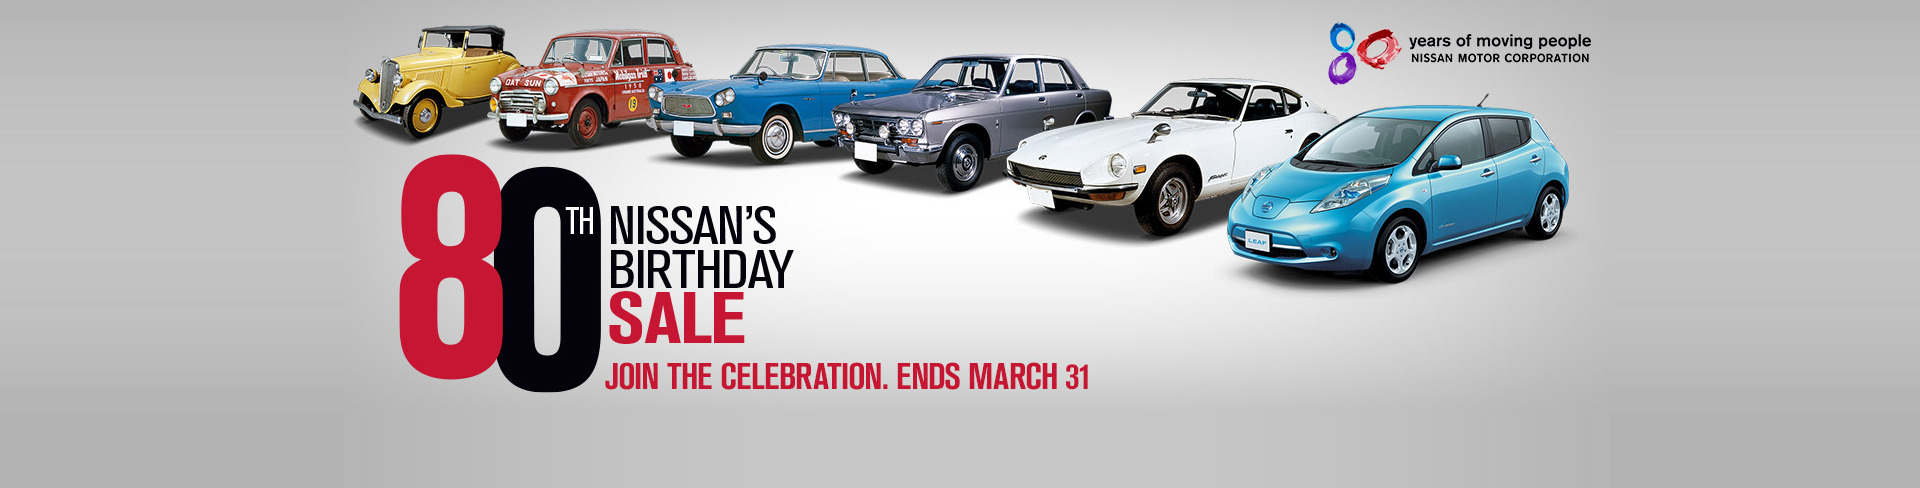 Nissan's 80th Birthday Sale